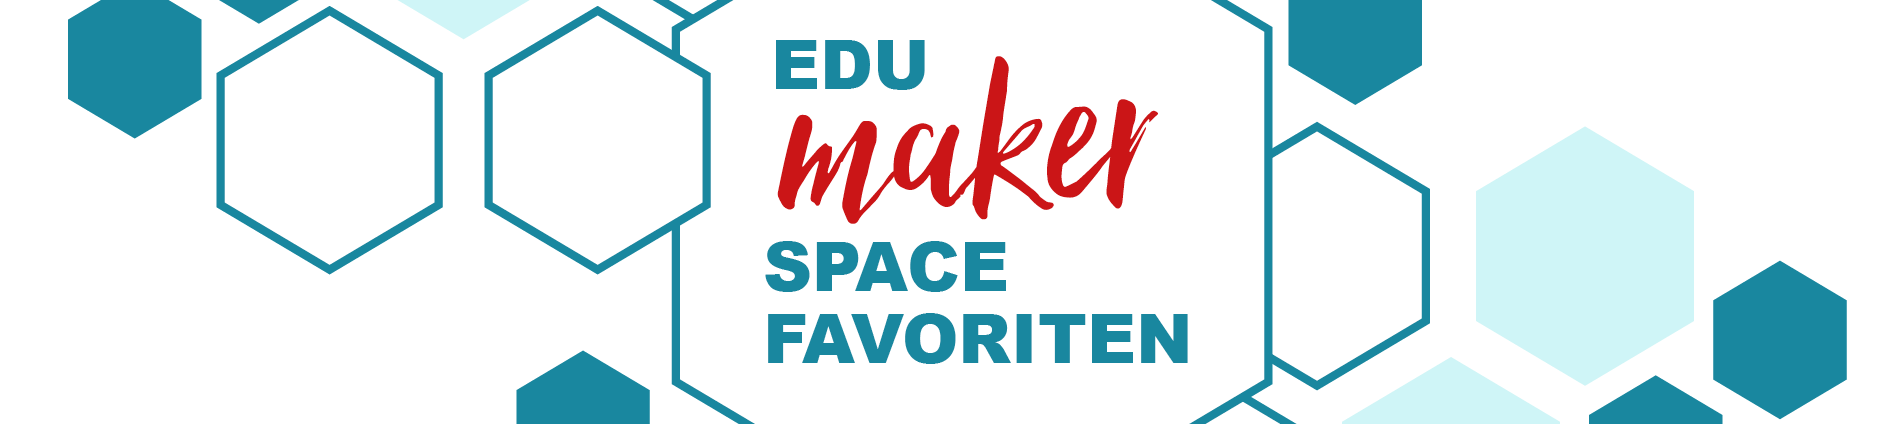 Edu Makerspace